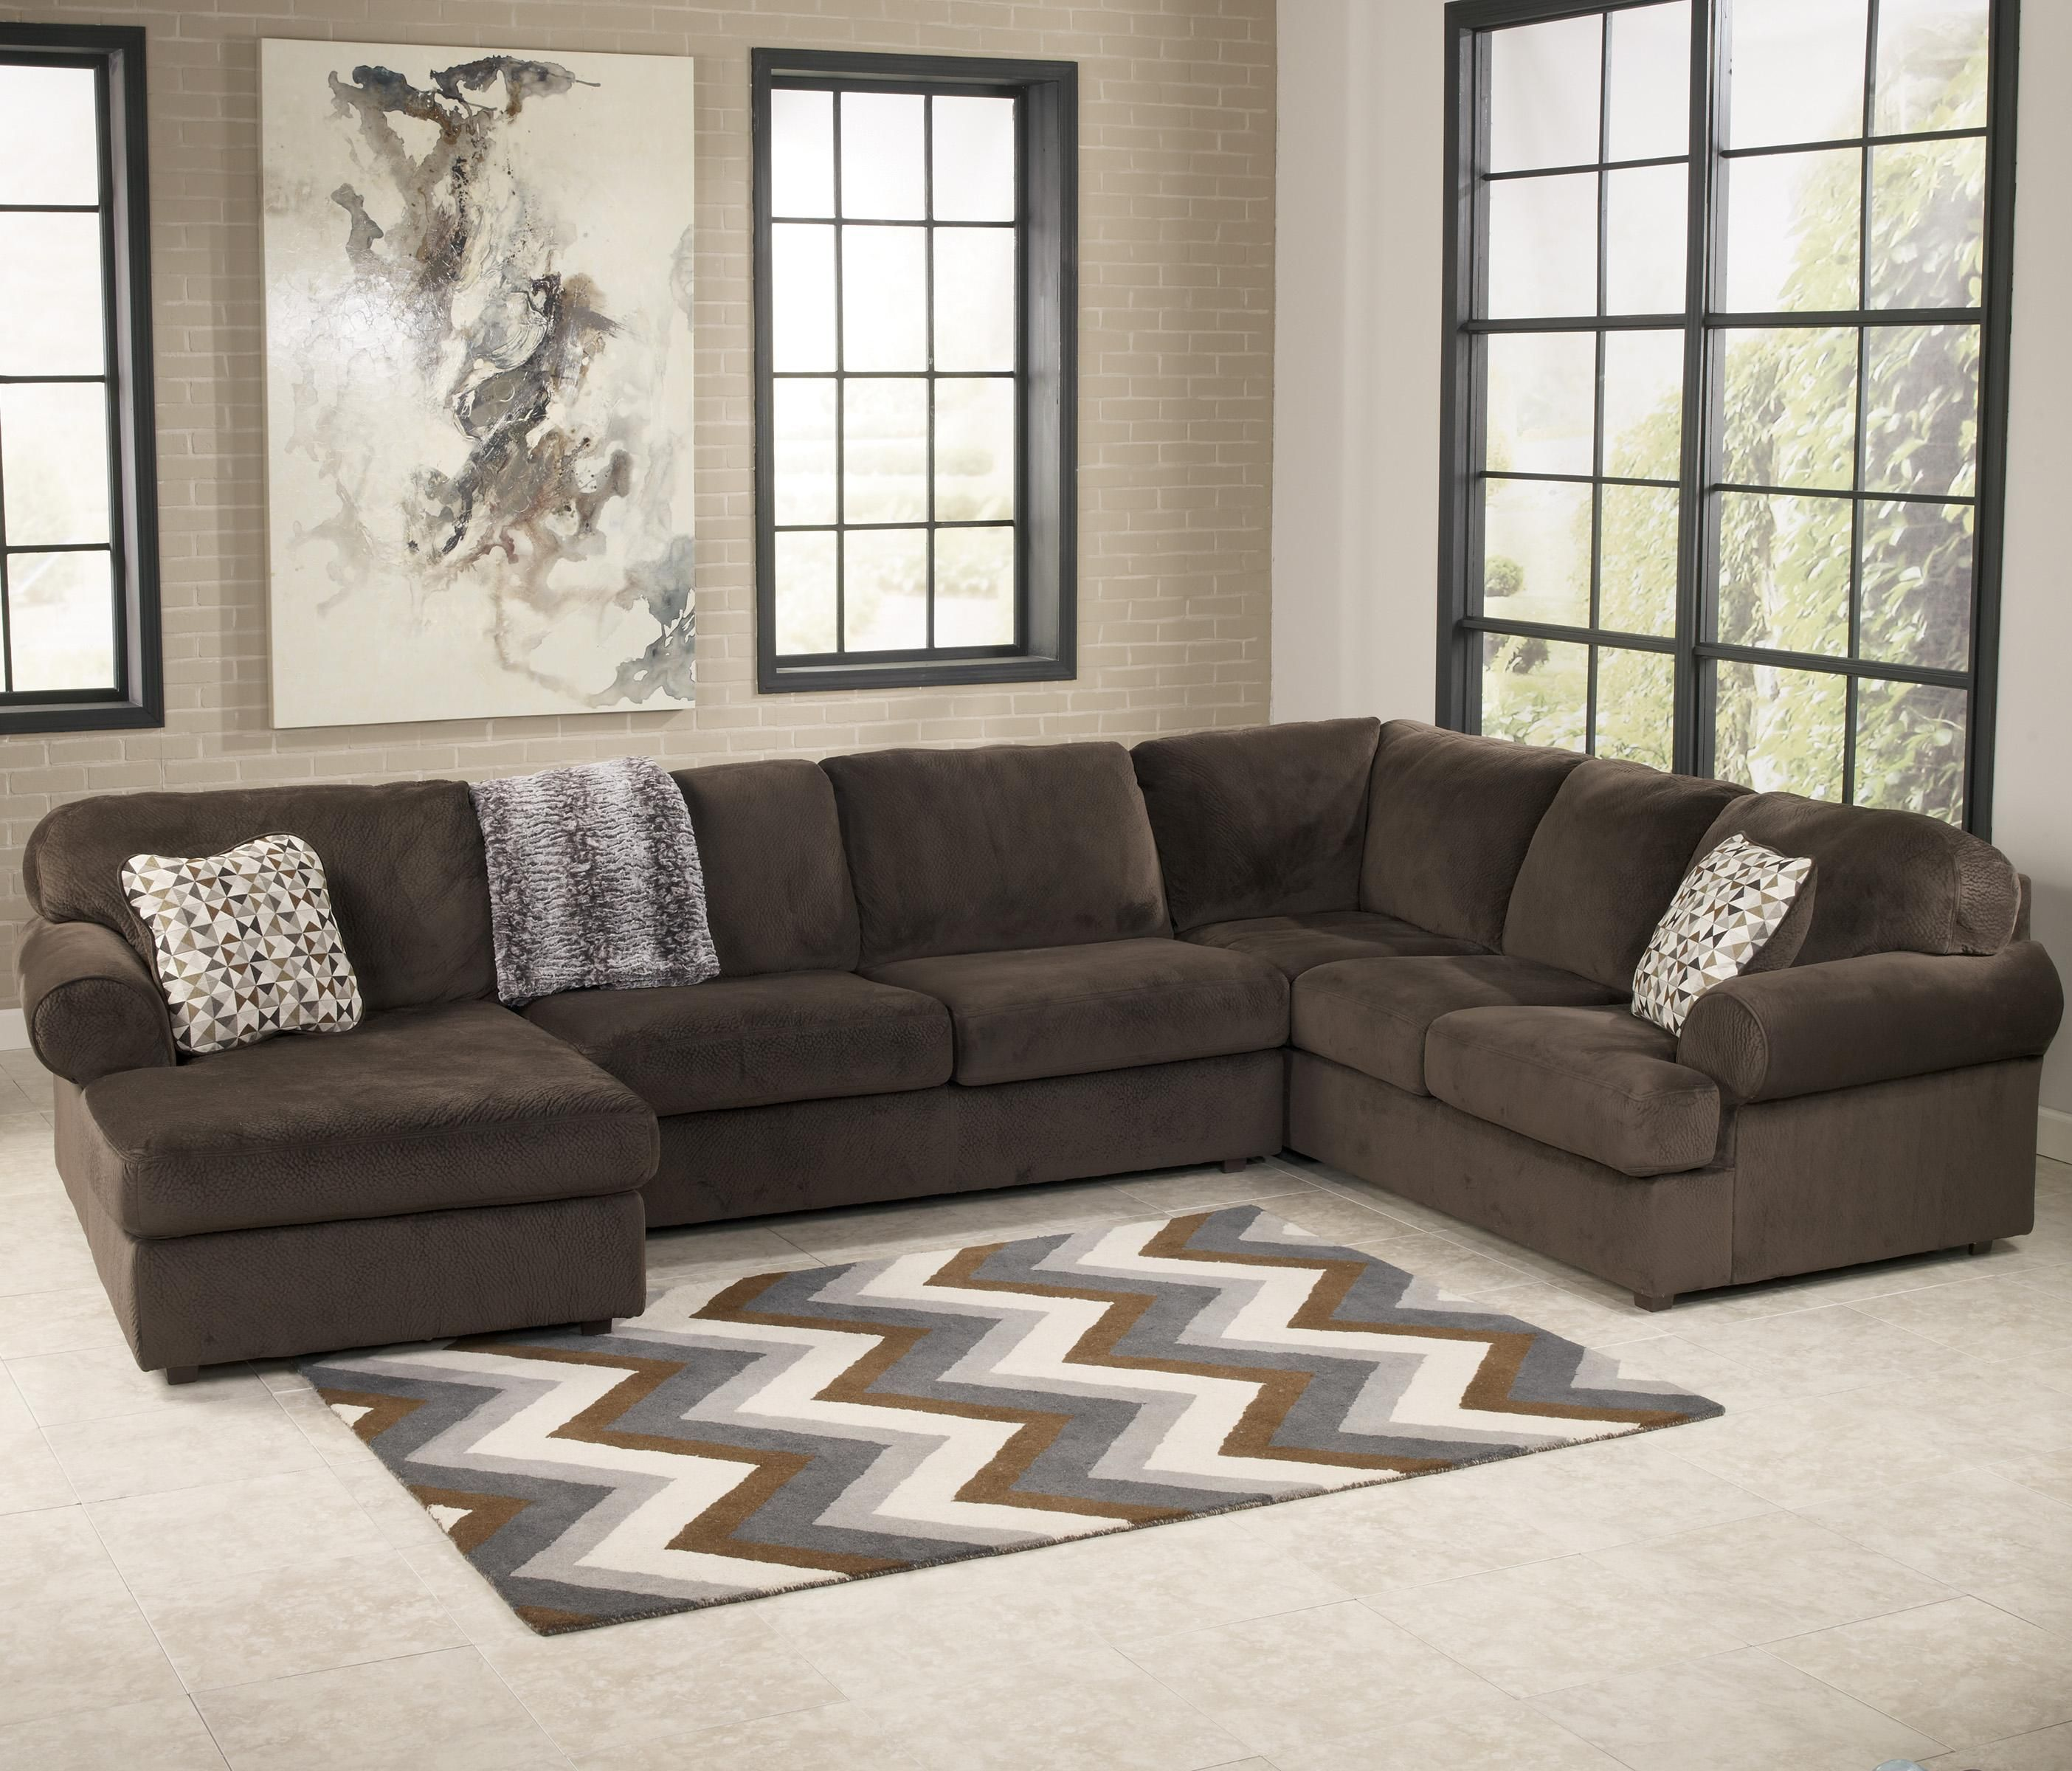 Jessa Place  Chocolate Casual Sectional Sofa With Left Chaise Fair Living Room With Sectional Design Inspiration